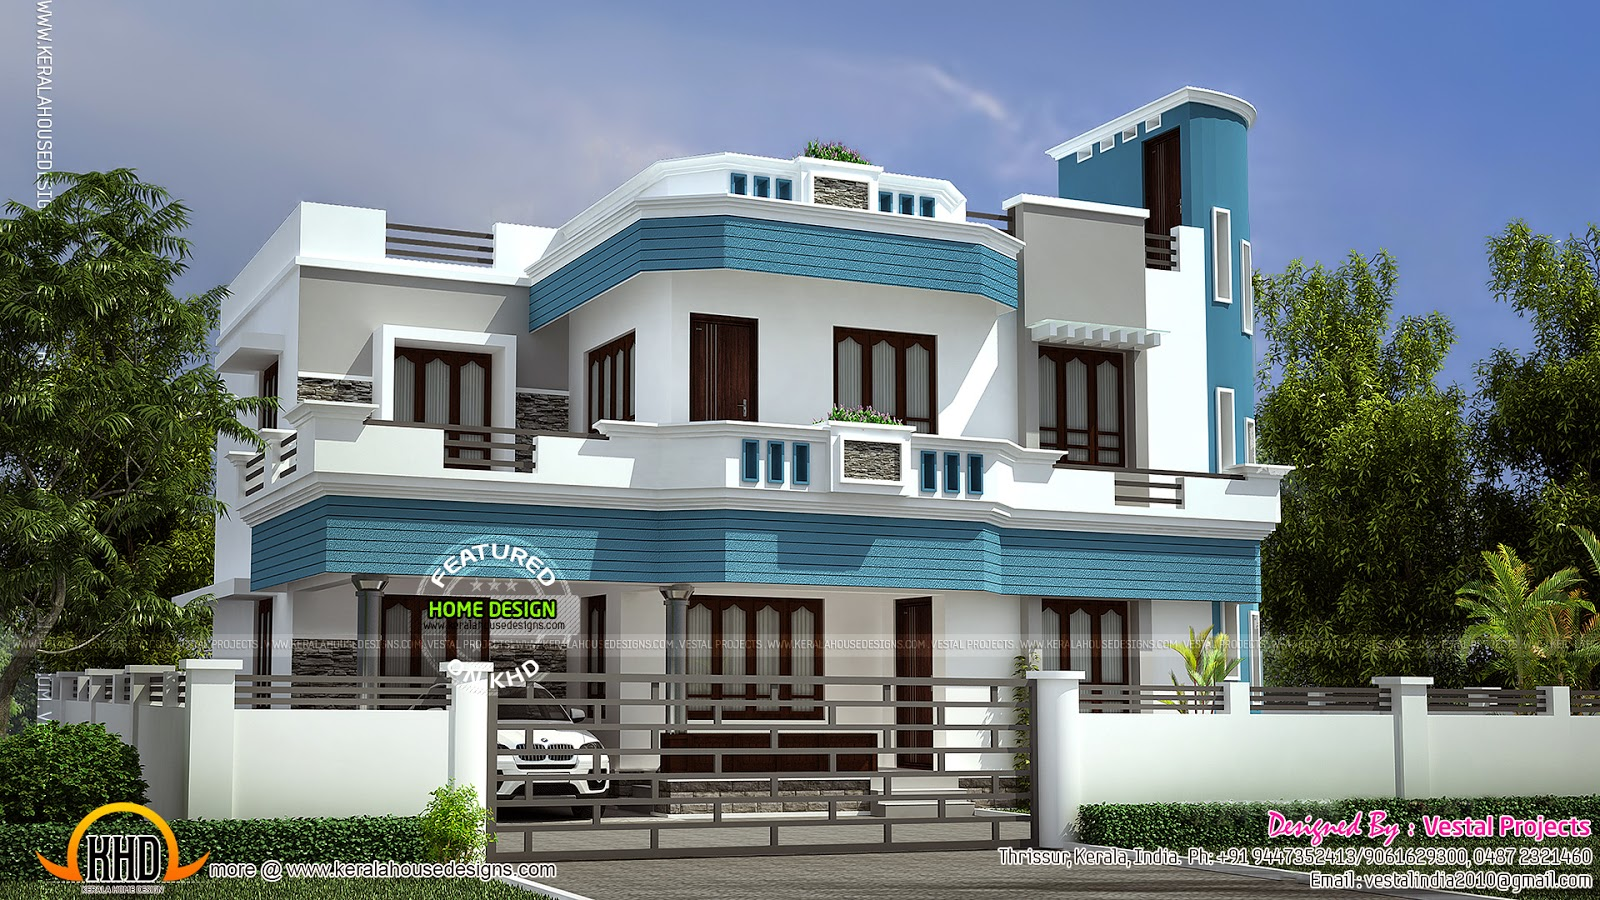 Awesome house by vestal projects kerala home design and for Design house